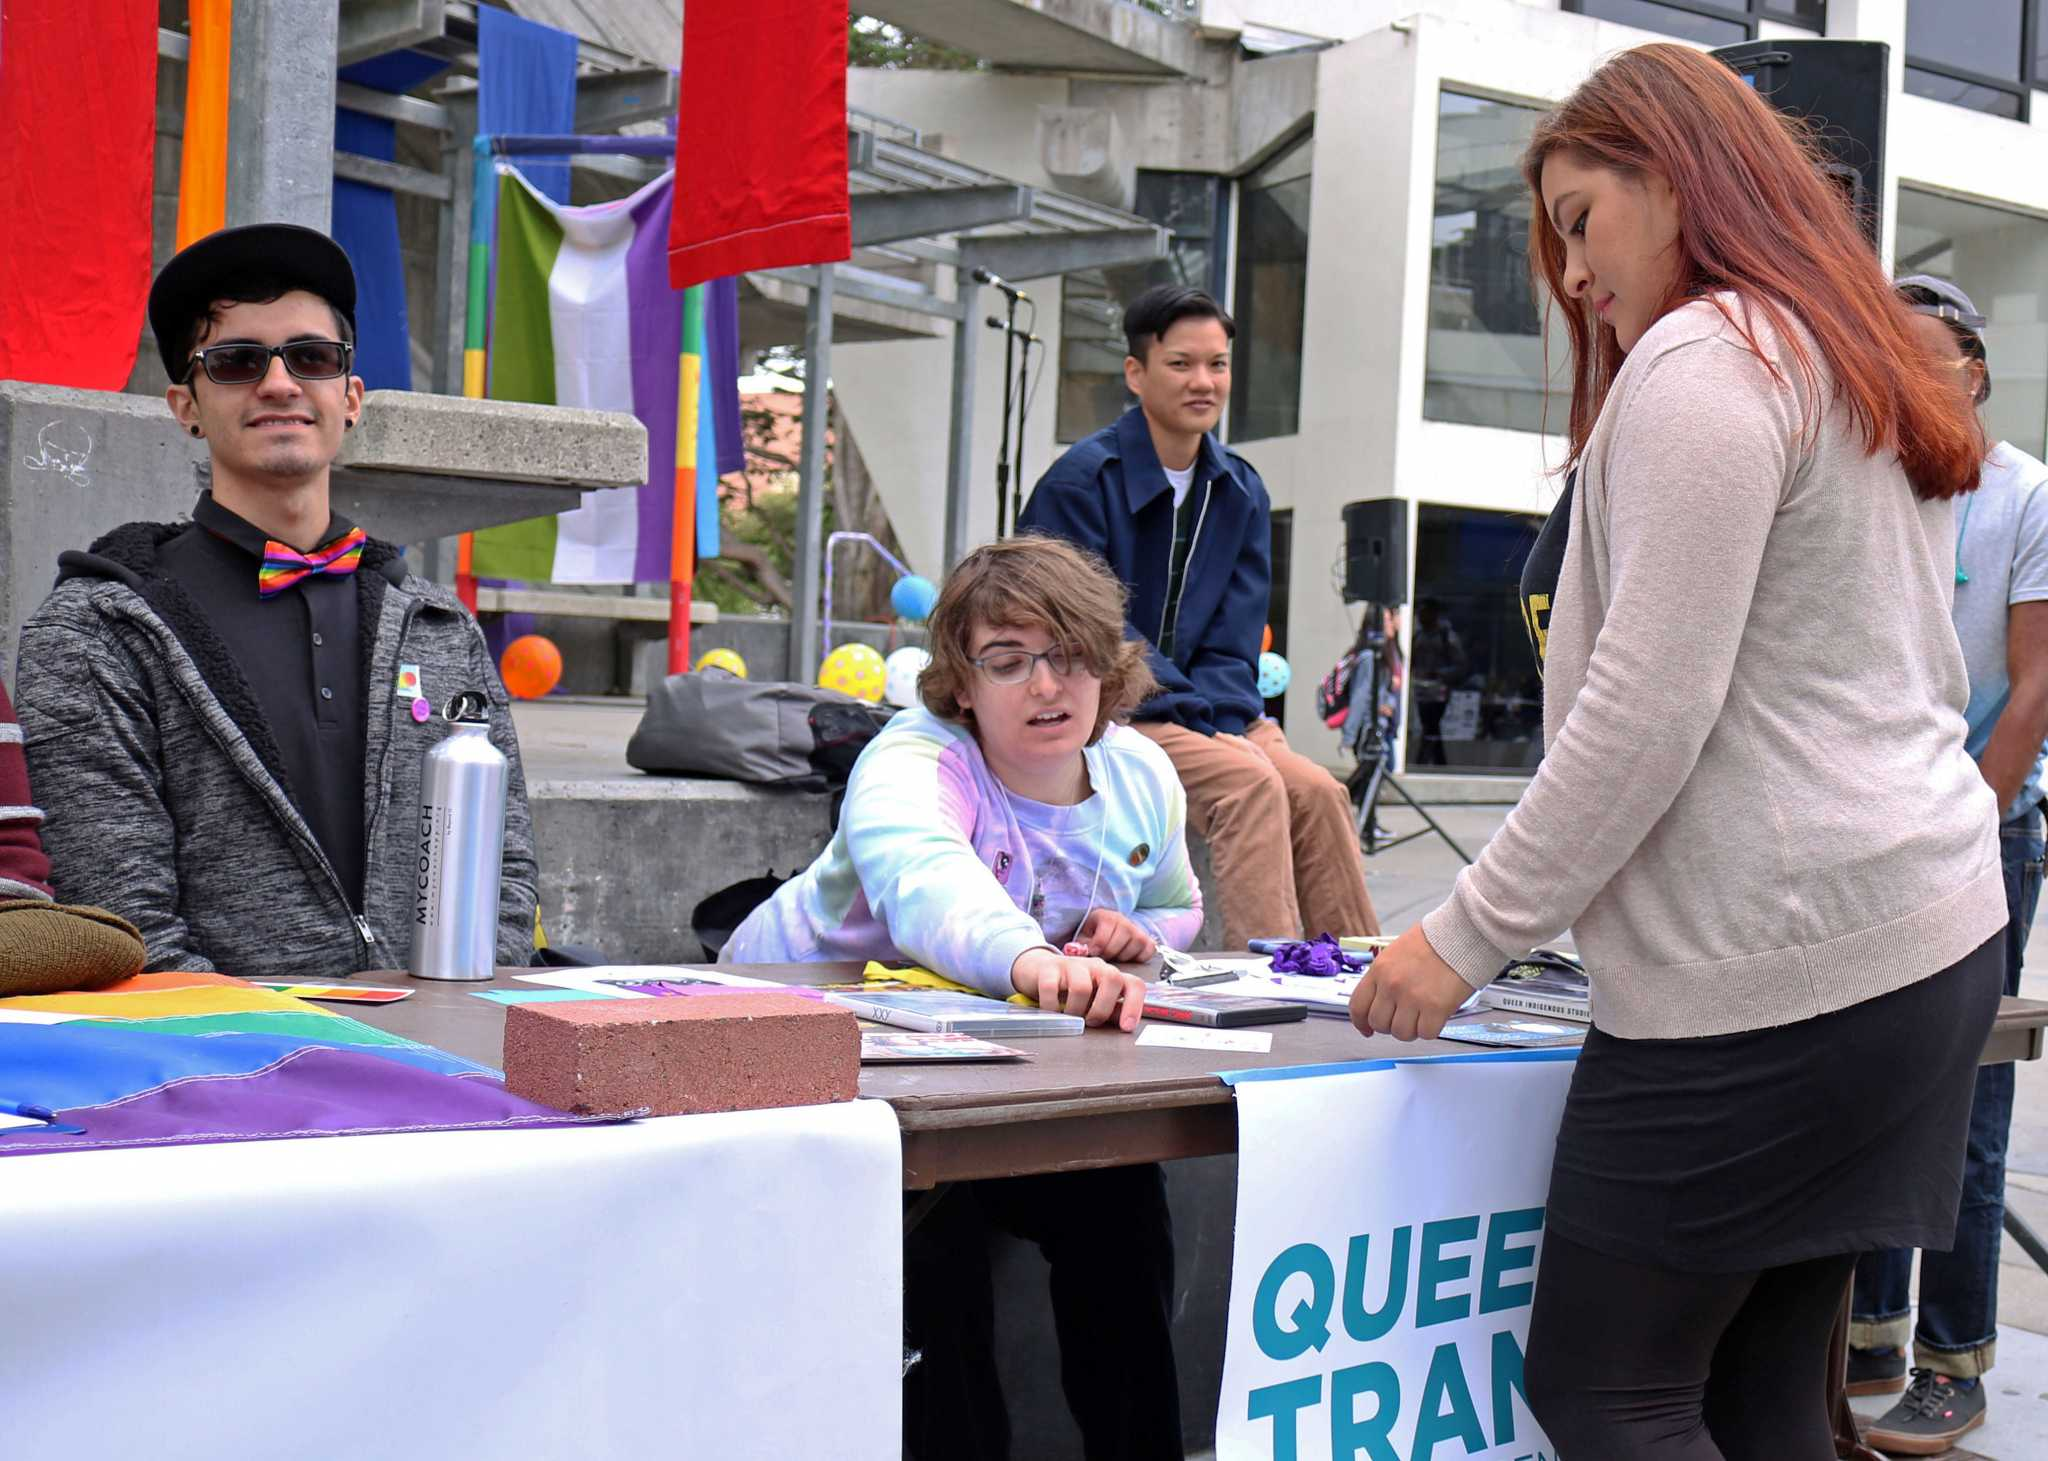 Queer Alliance and Trans Center members Alan Martinez (left) and Lauren Wolf (center) speak to a SF State student during the Coming Out Day event in Malcolm X Plaza on Monday, Oct. 10, 2016.